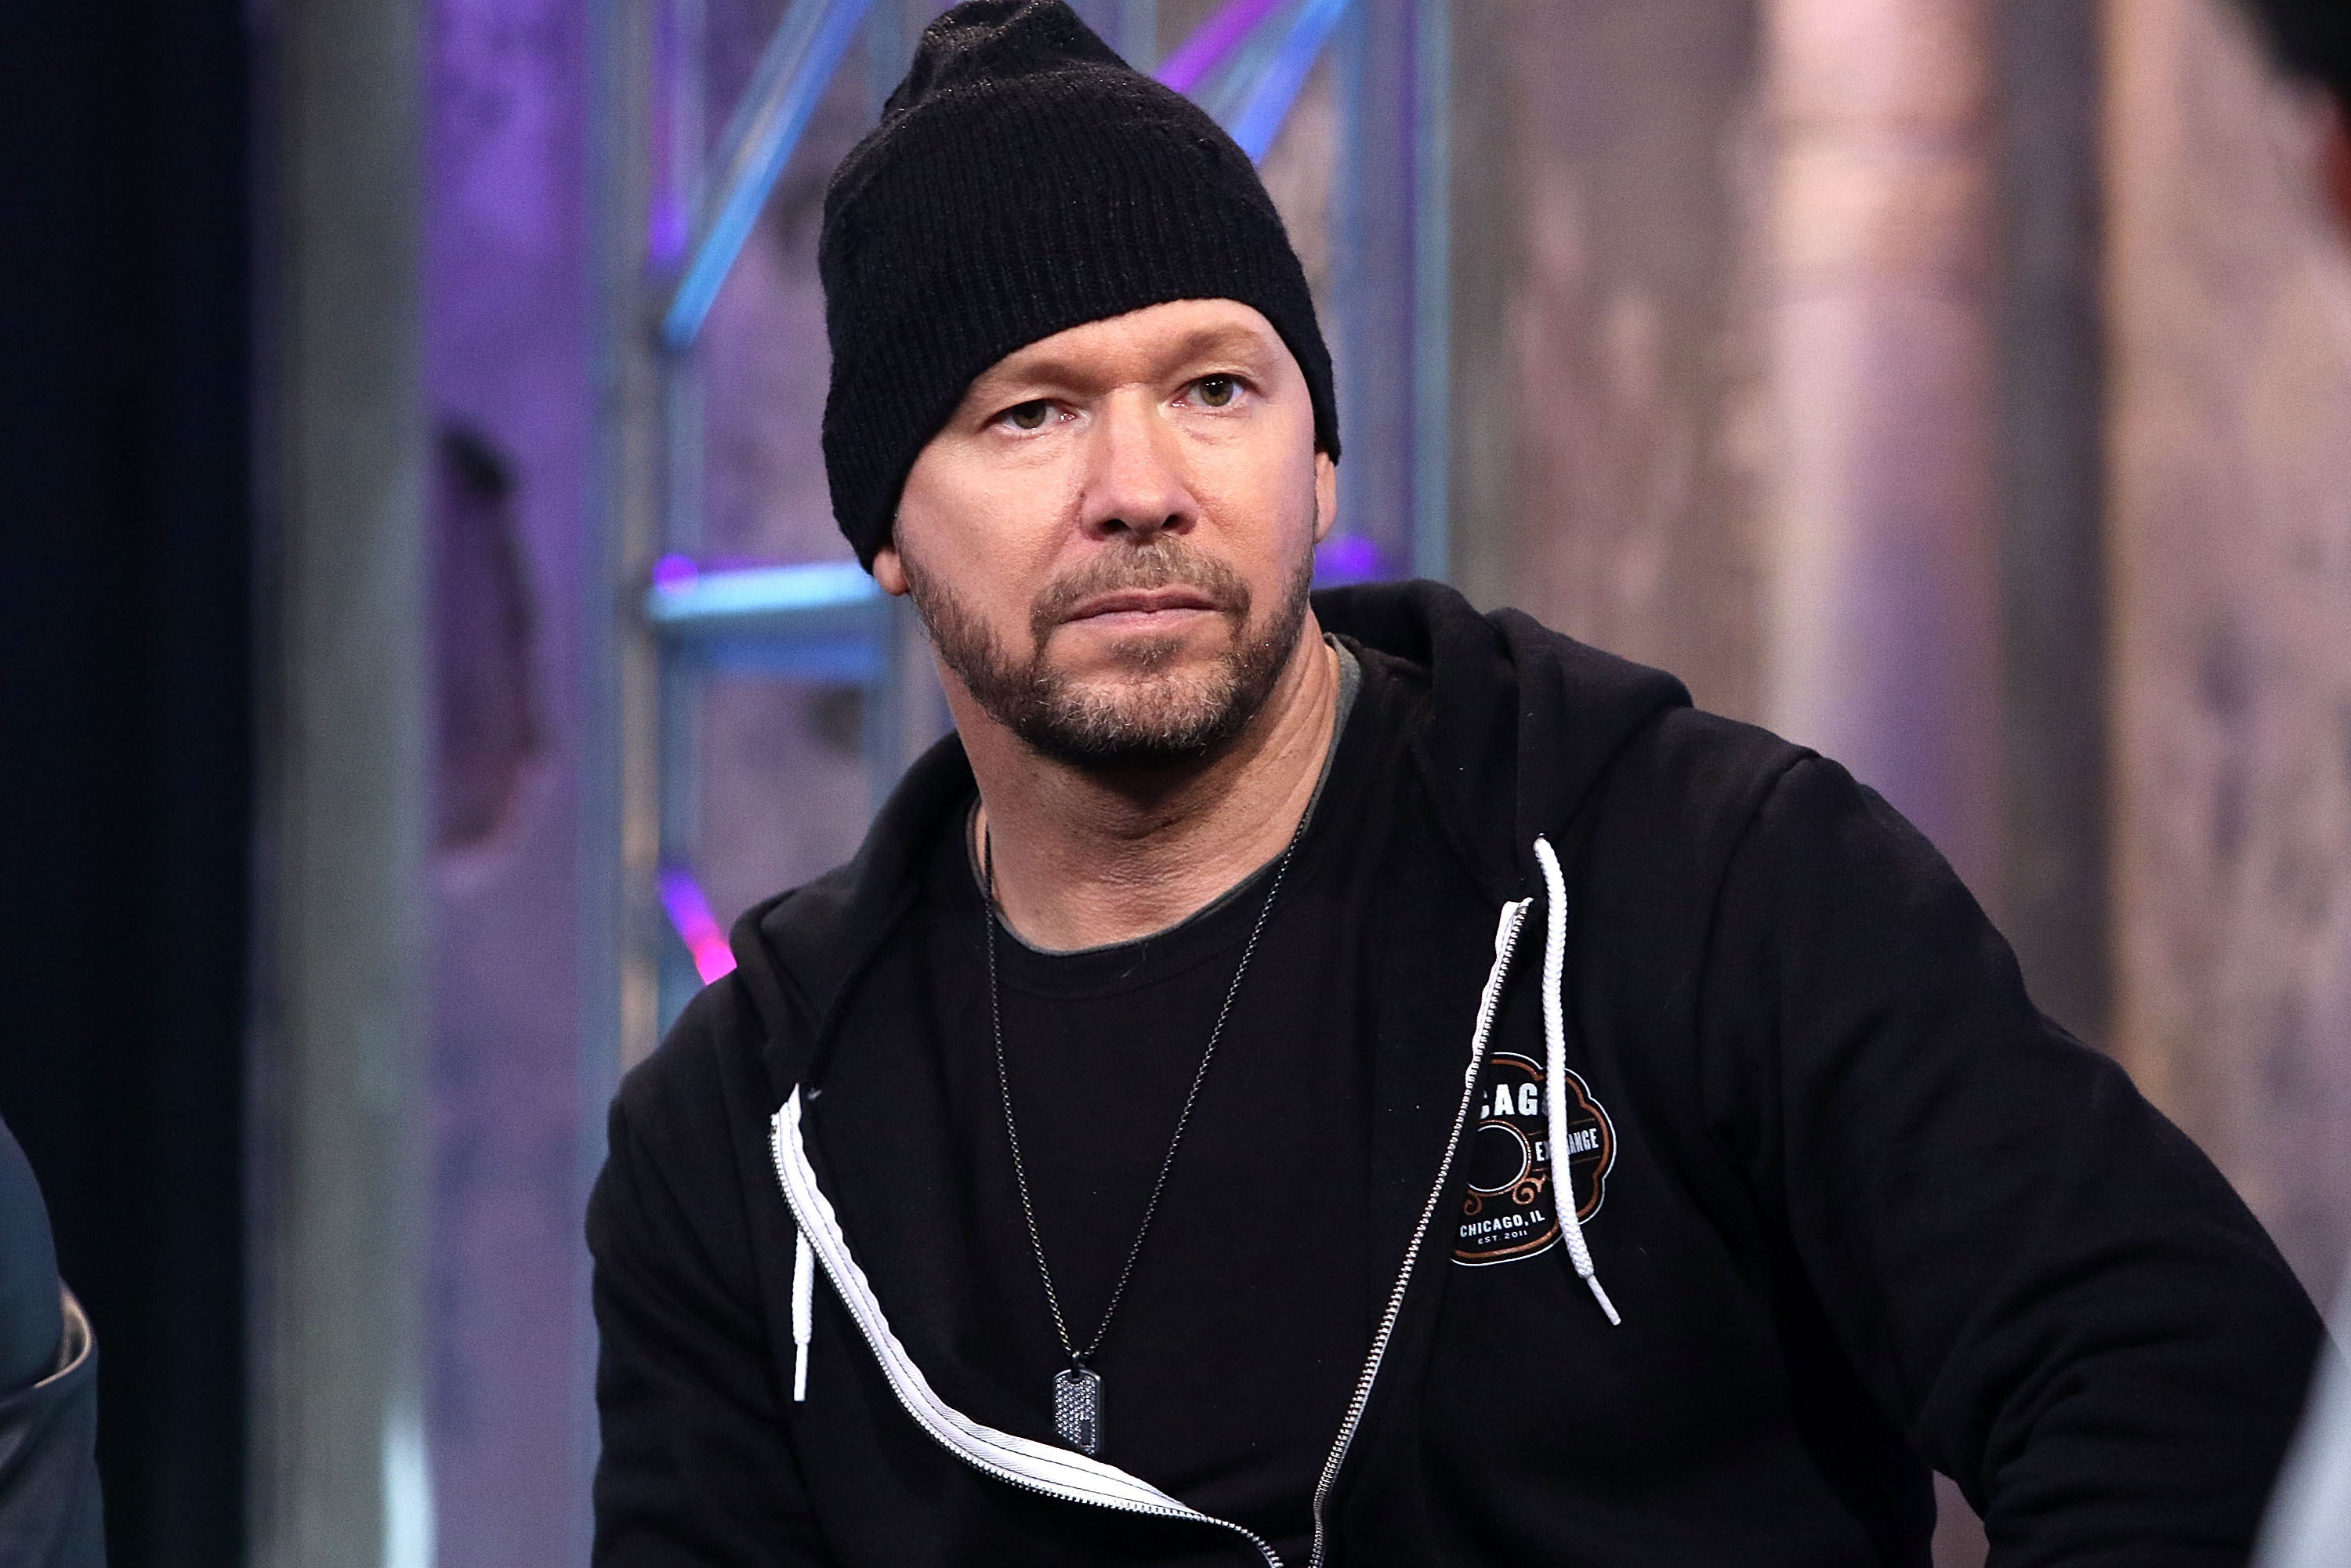 """Donnie Wahlberg of New Kids on the Block attends AOL Build Speaker Series to discuss """"Rock this Boat: New Kids on the Block"""" Season 2 at AOL Studios In New York on June 9, 2016, in New York City. 